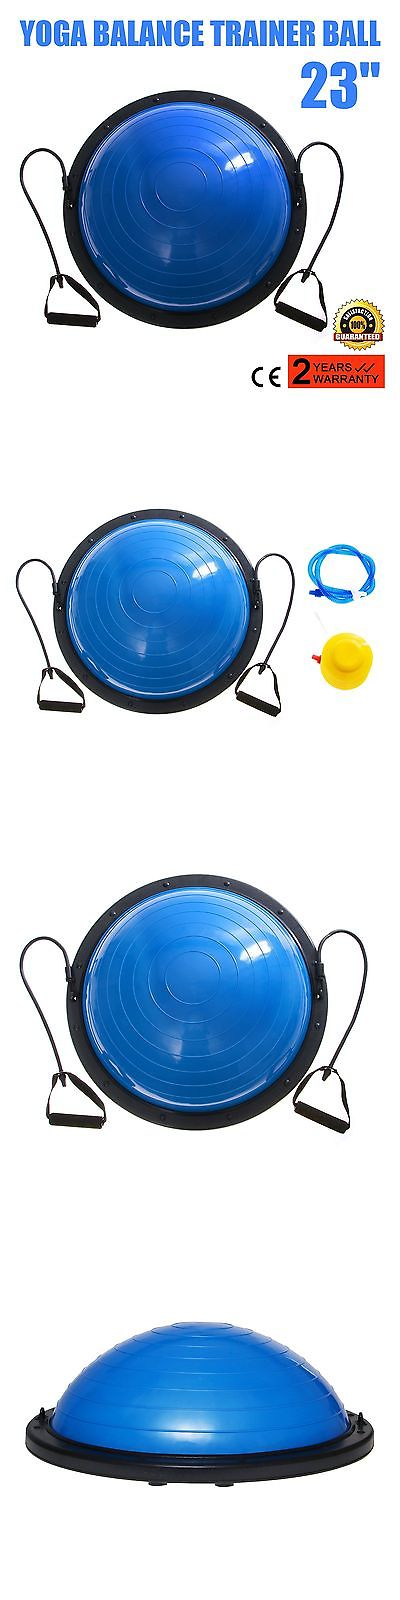 Balance Trainers 179803: Vevor Balance Trainer Ball 23 Inch Balance Trainer Blue Balance Ball Yoga Fit... BUY IT NOW ONLY: $64.36